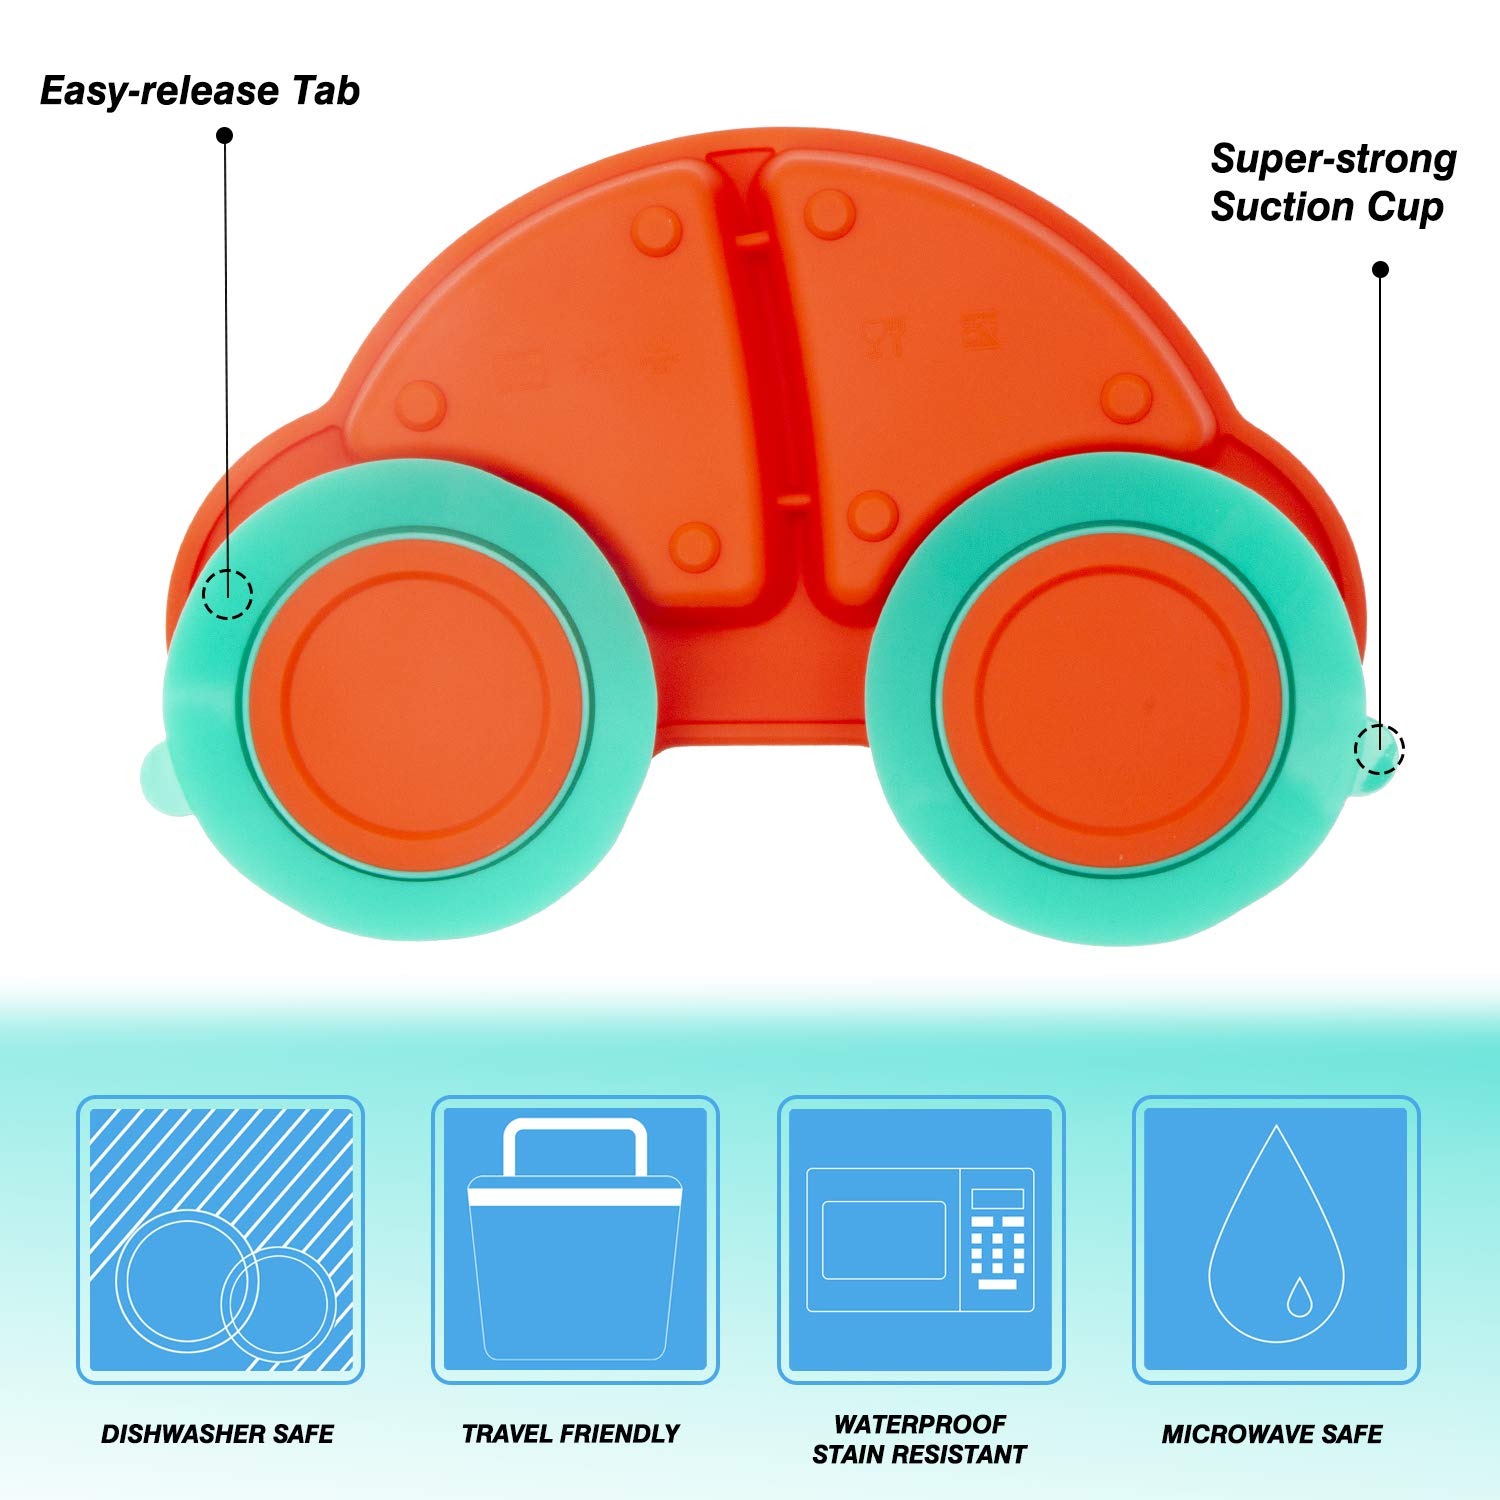 Qshare Toddler Plate Portable Baby Plate for Toddlers and Kids BPA-Free FDA Approved Strong Suction Plates for Toddlers Dishwasher and Microwave Safe Silicone Placemat 24 * 17 * 3cm